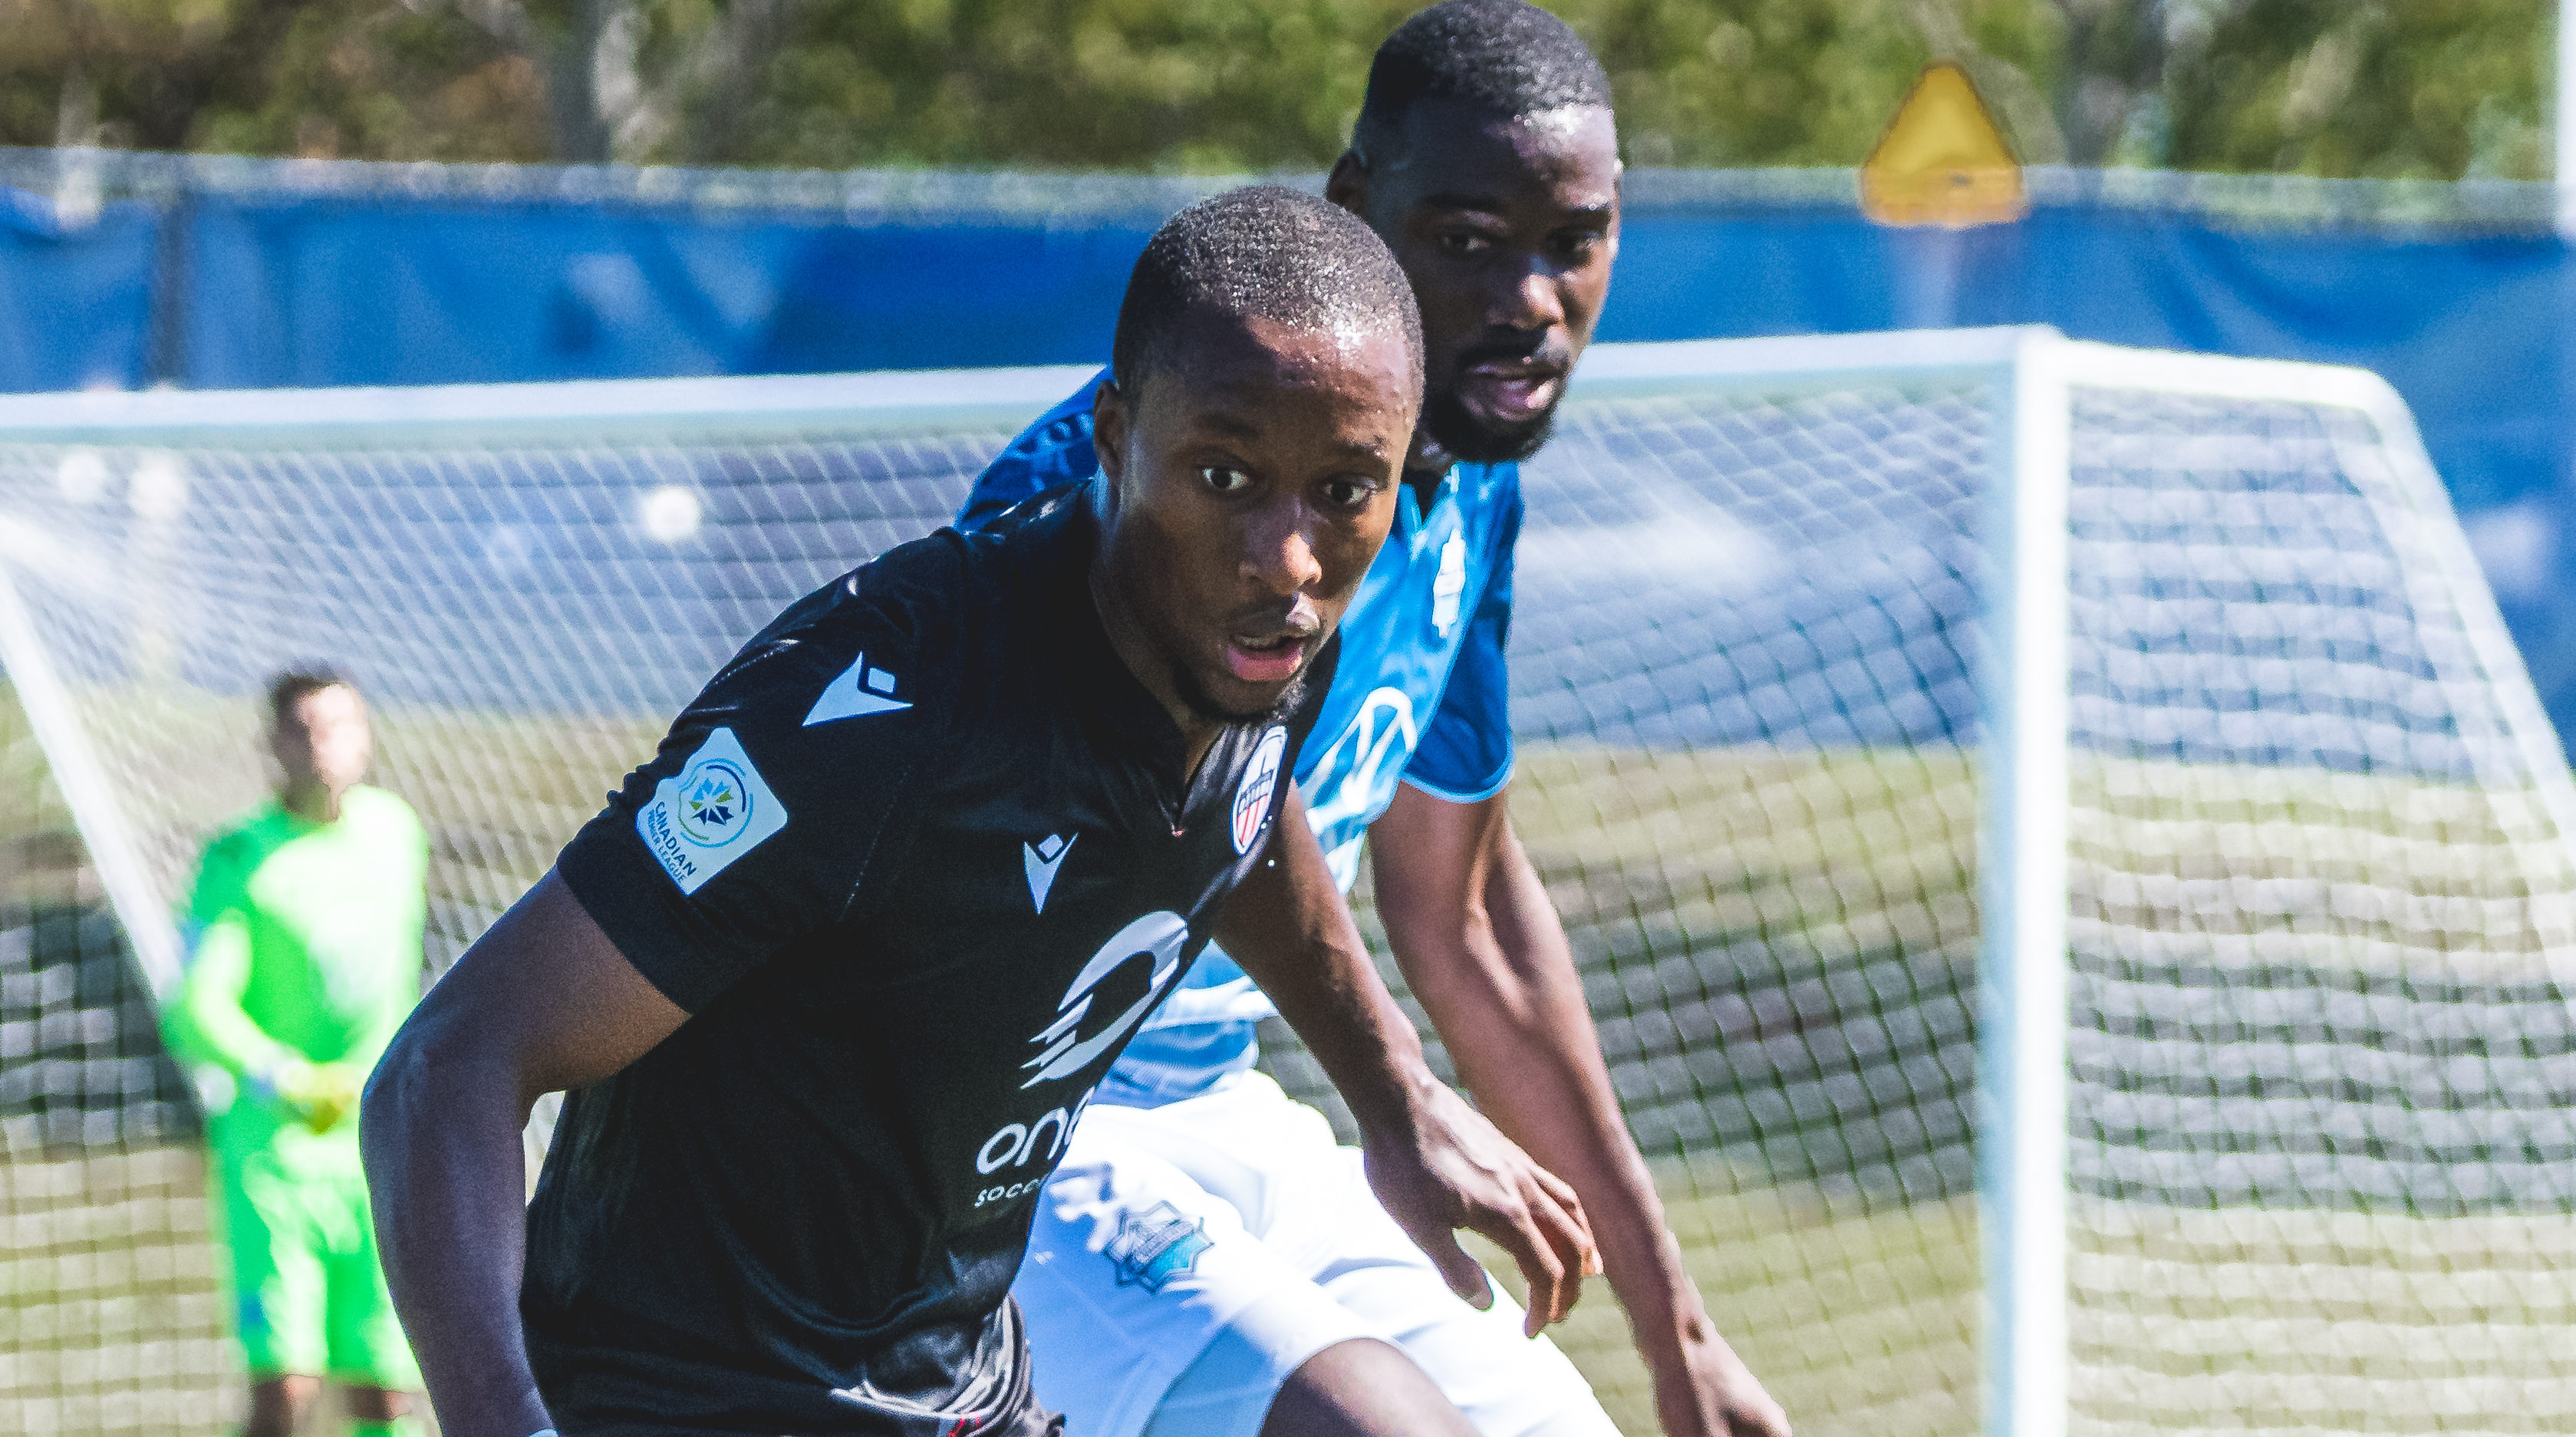 Atlético Ottawa's Malcolm Shaw. (CPL/Chant Photography)